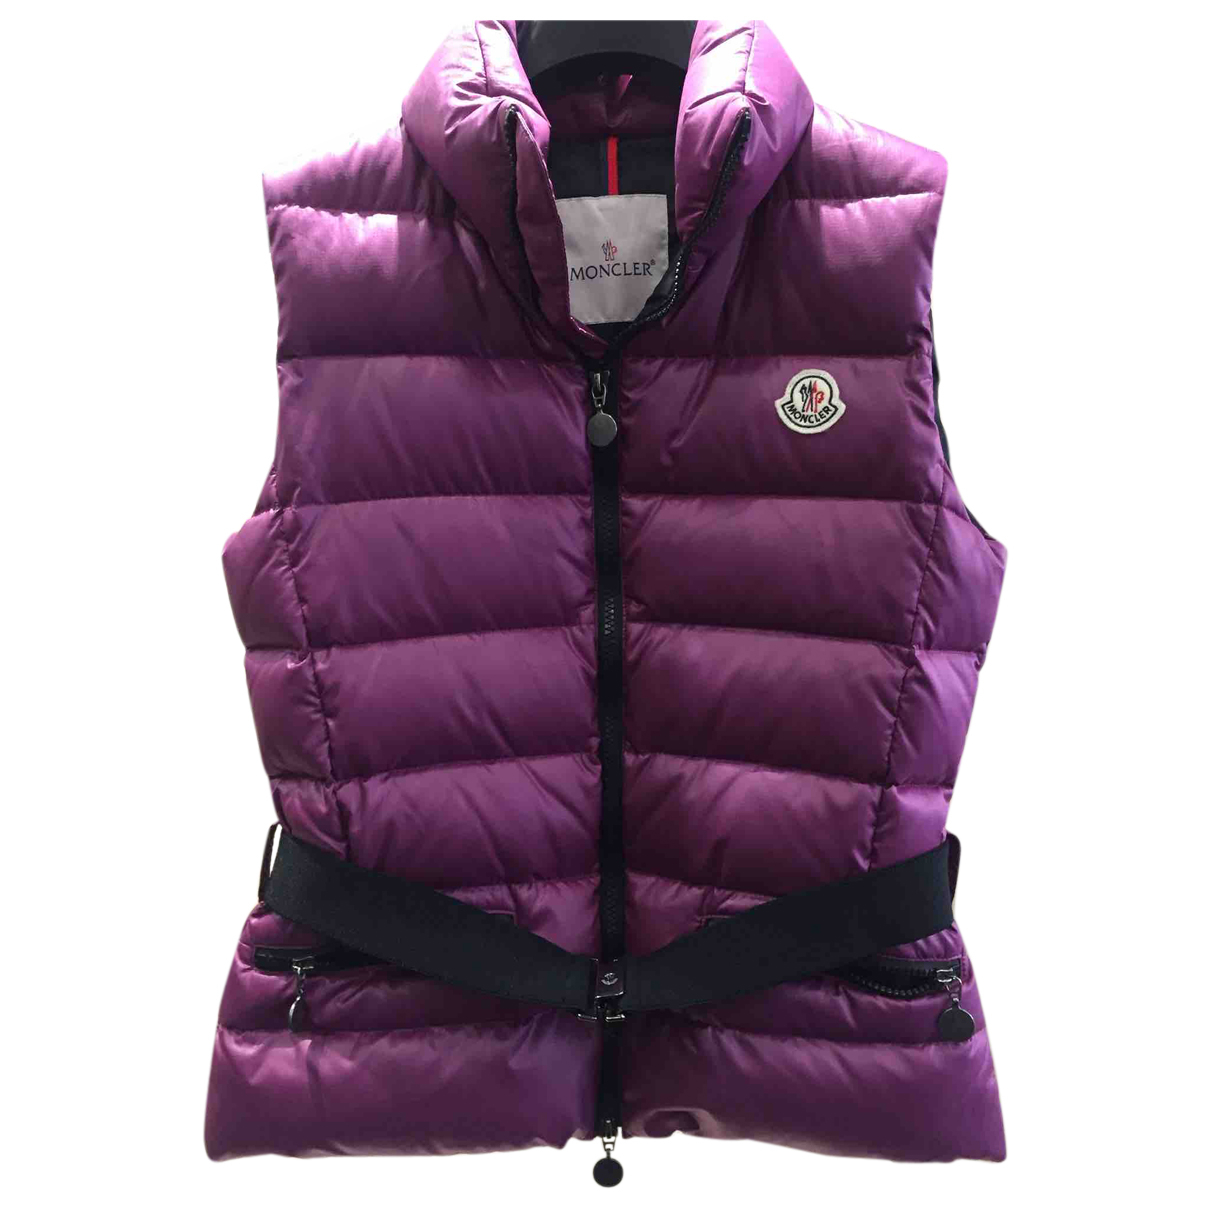 Moncler \N Jacke in  Lila Polyester